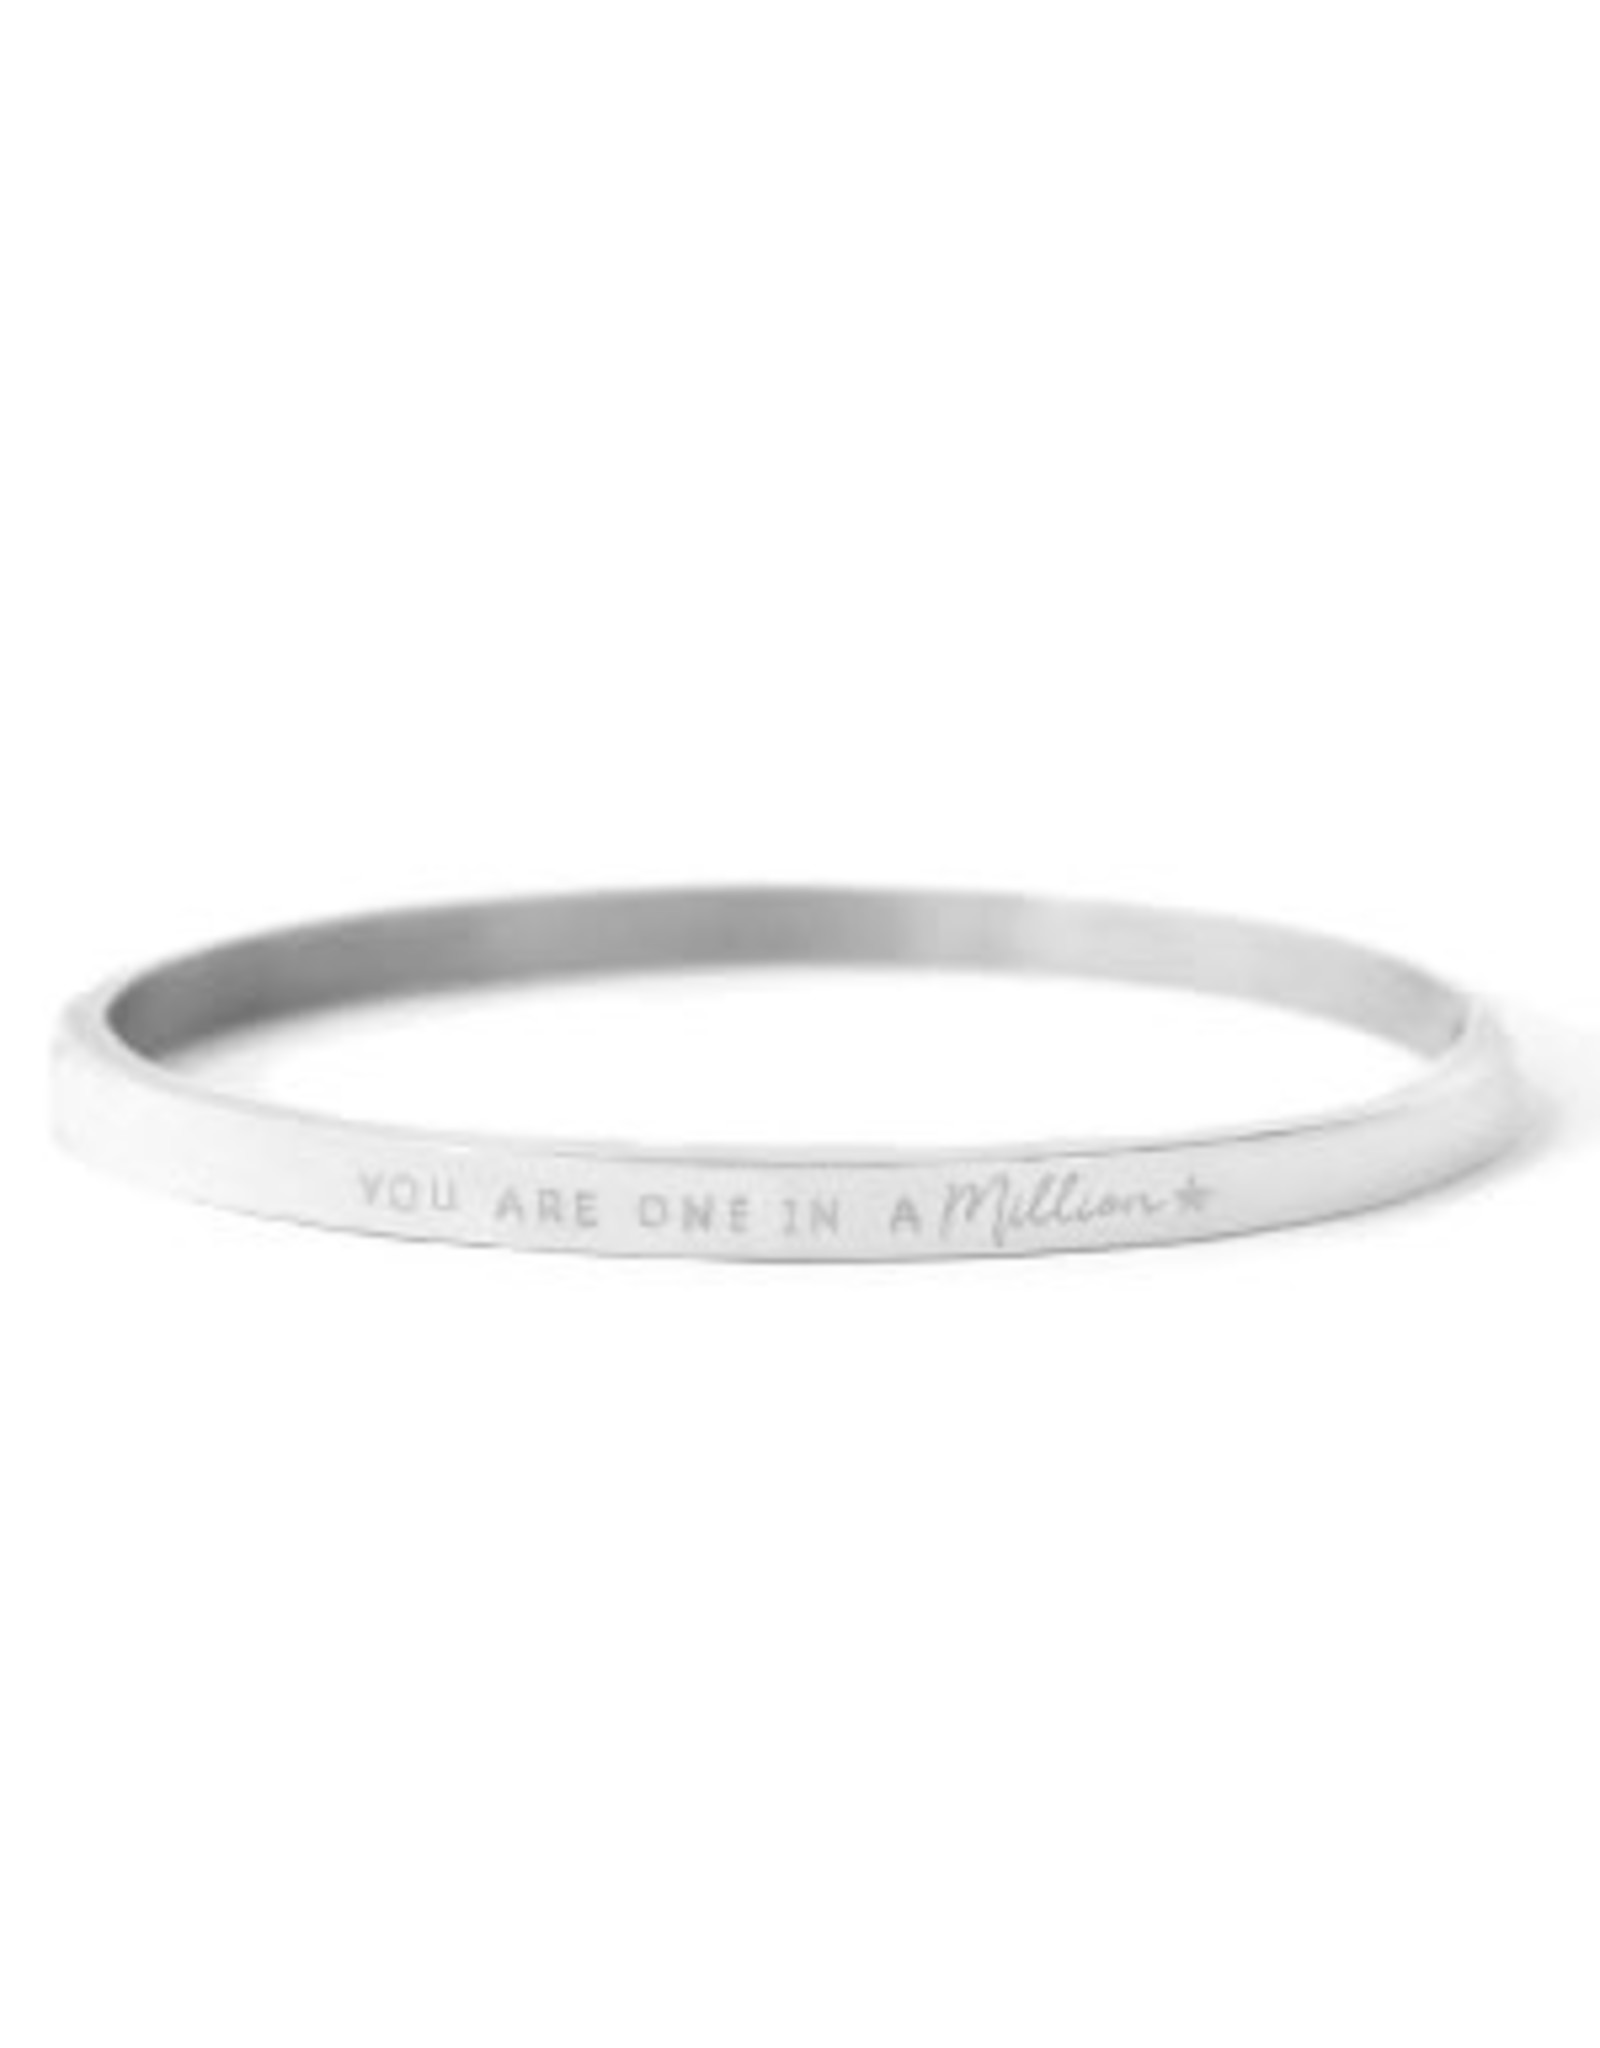 Armband RVS You are one in a million zilverkleurig